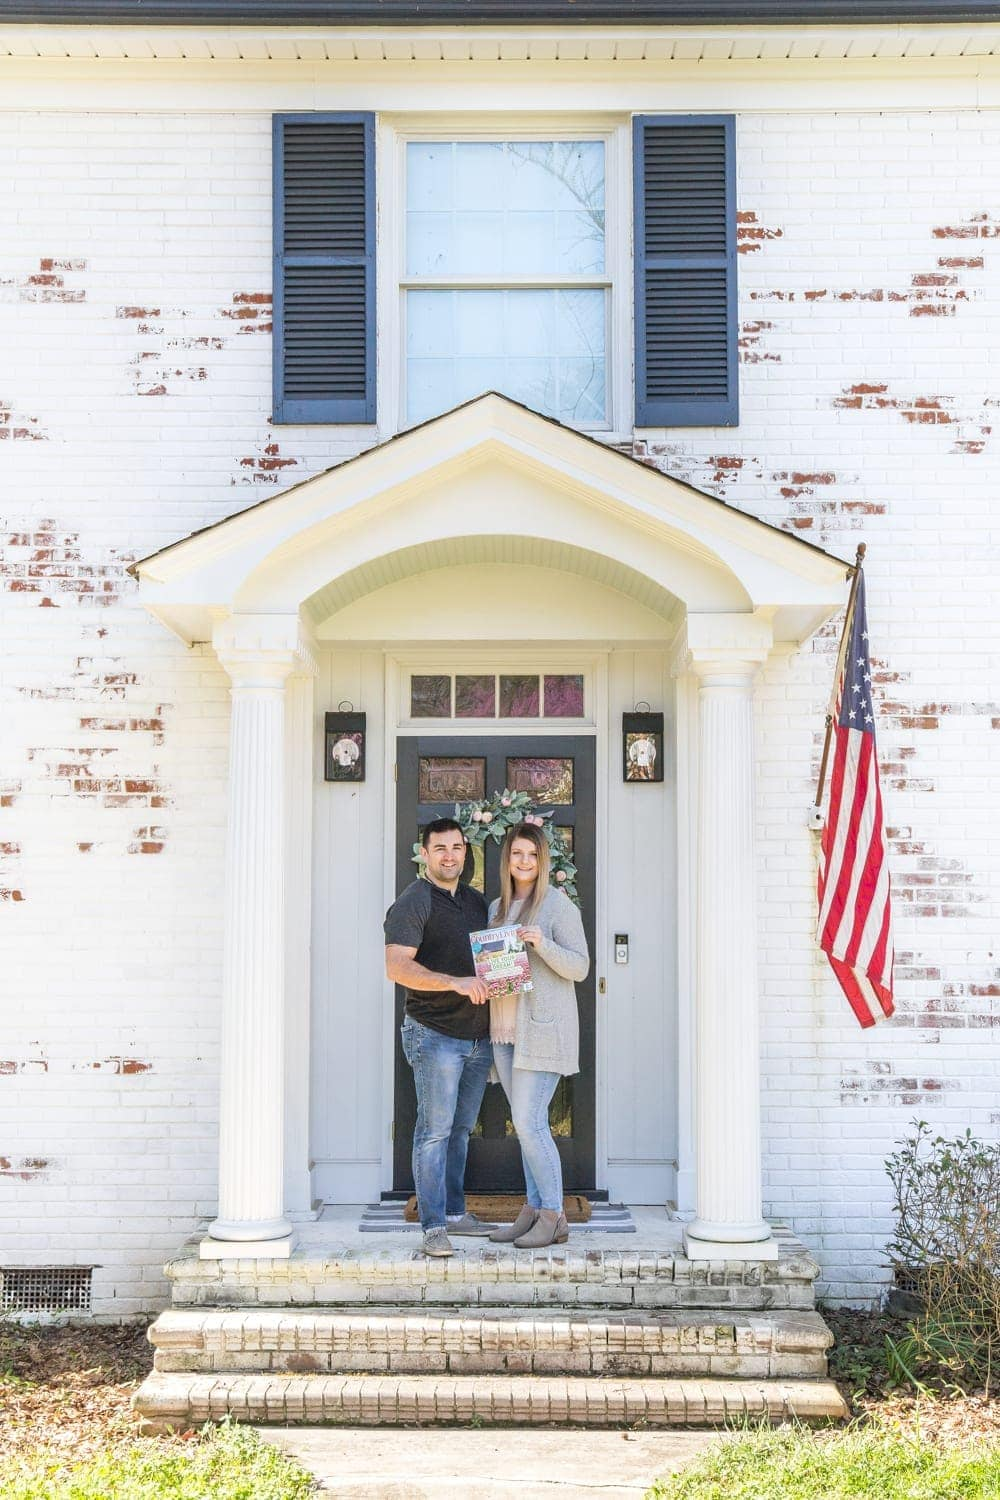 FAQs About Our Limewashed Brick   All of our frequently asked questions about our limewashed brick concerning neighbors' opinions, trends, DIY-ability, and why we chose it over paint. #limewash #brickexterior #limewashedbrick #brickpaint #paintedbrick #exteriormakeover #curbappeal #brickhouse